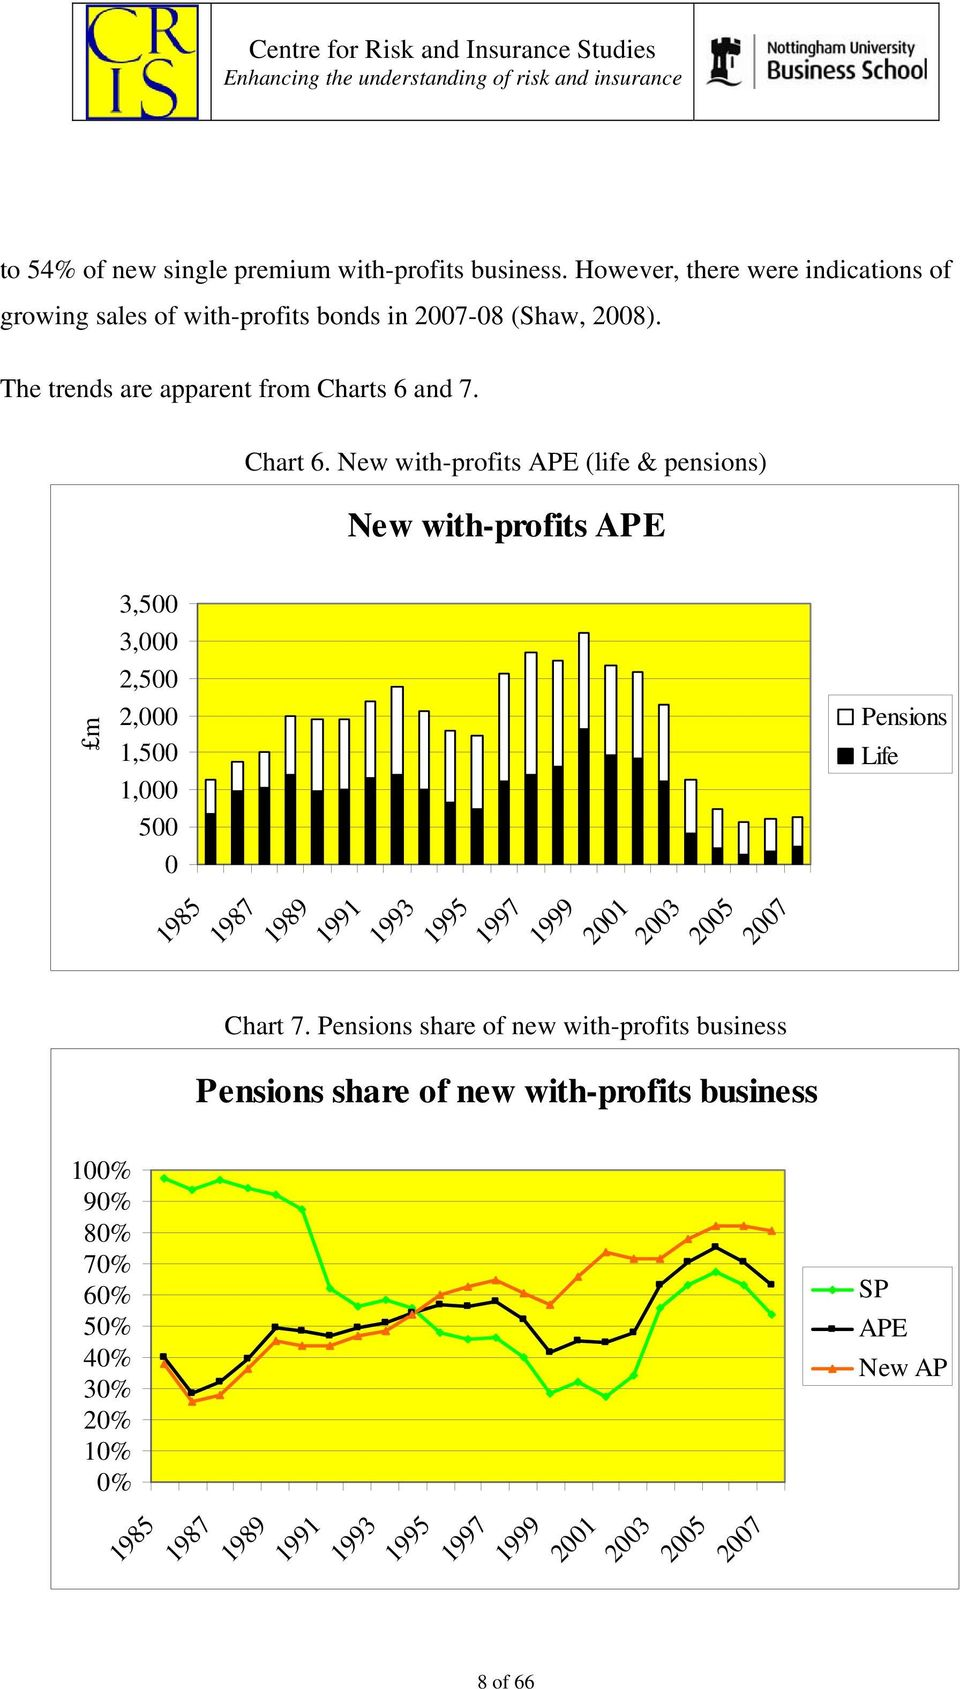 New with-profits APE (life & pensions) New with-profits APE m 100% 90% 80% 70% 60% 50% 40% 30% 20% 10% 0% 3,500 3,000 2,500 2,000 1,500 1,000 500 0